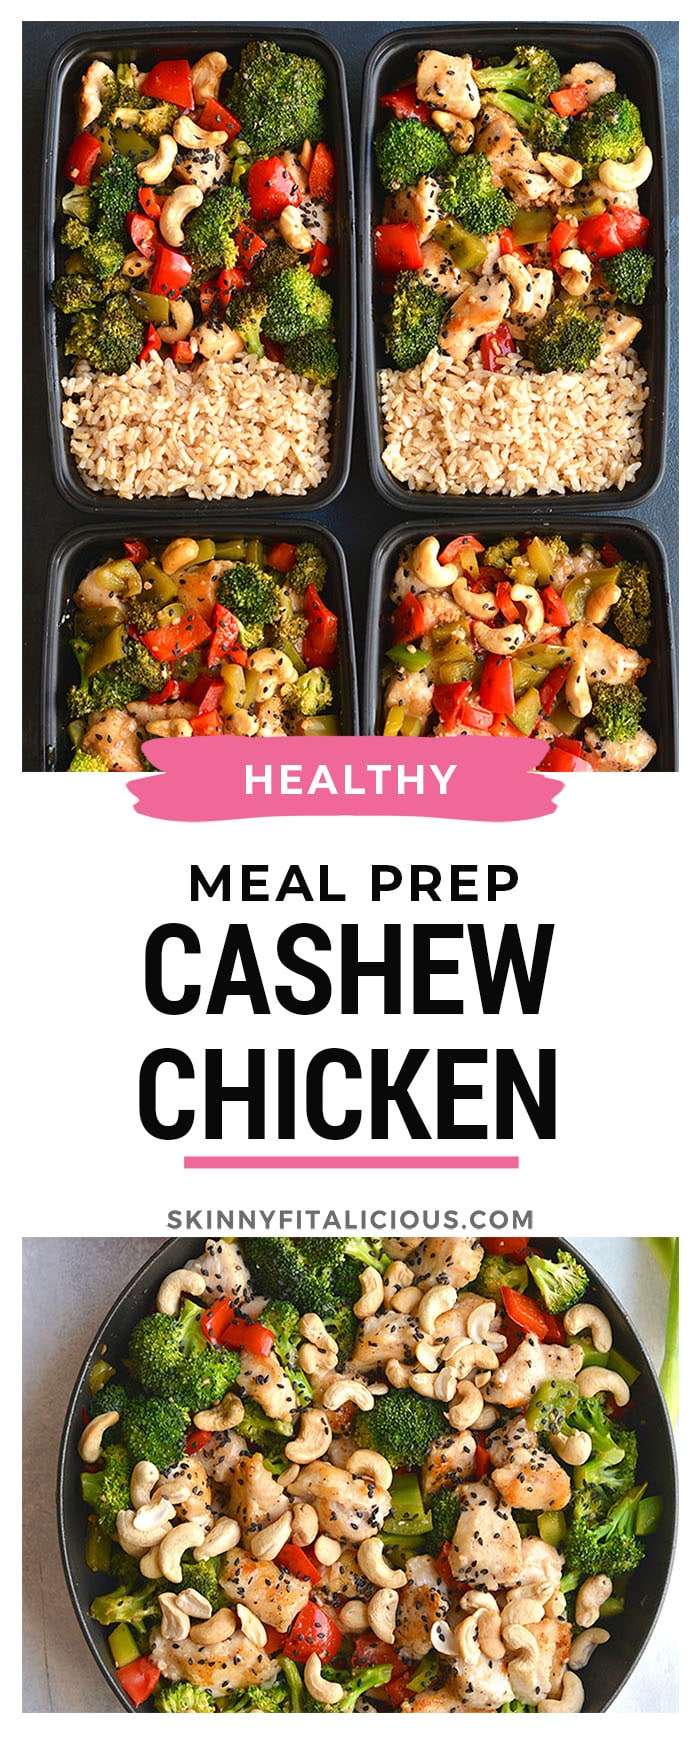 Meal Prep Cashew Chicken! An EASY, 20 minute one skillet meal that's loaded with veggies, crispy chicken and flavor. Cheaper and healthier than take-out! Gluten Free + Low Calorie with Paleo substitutions